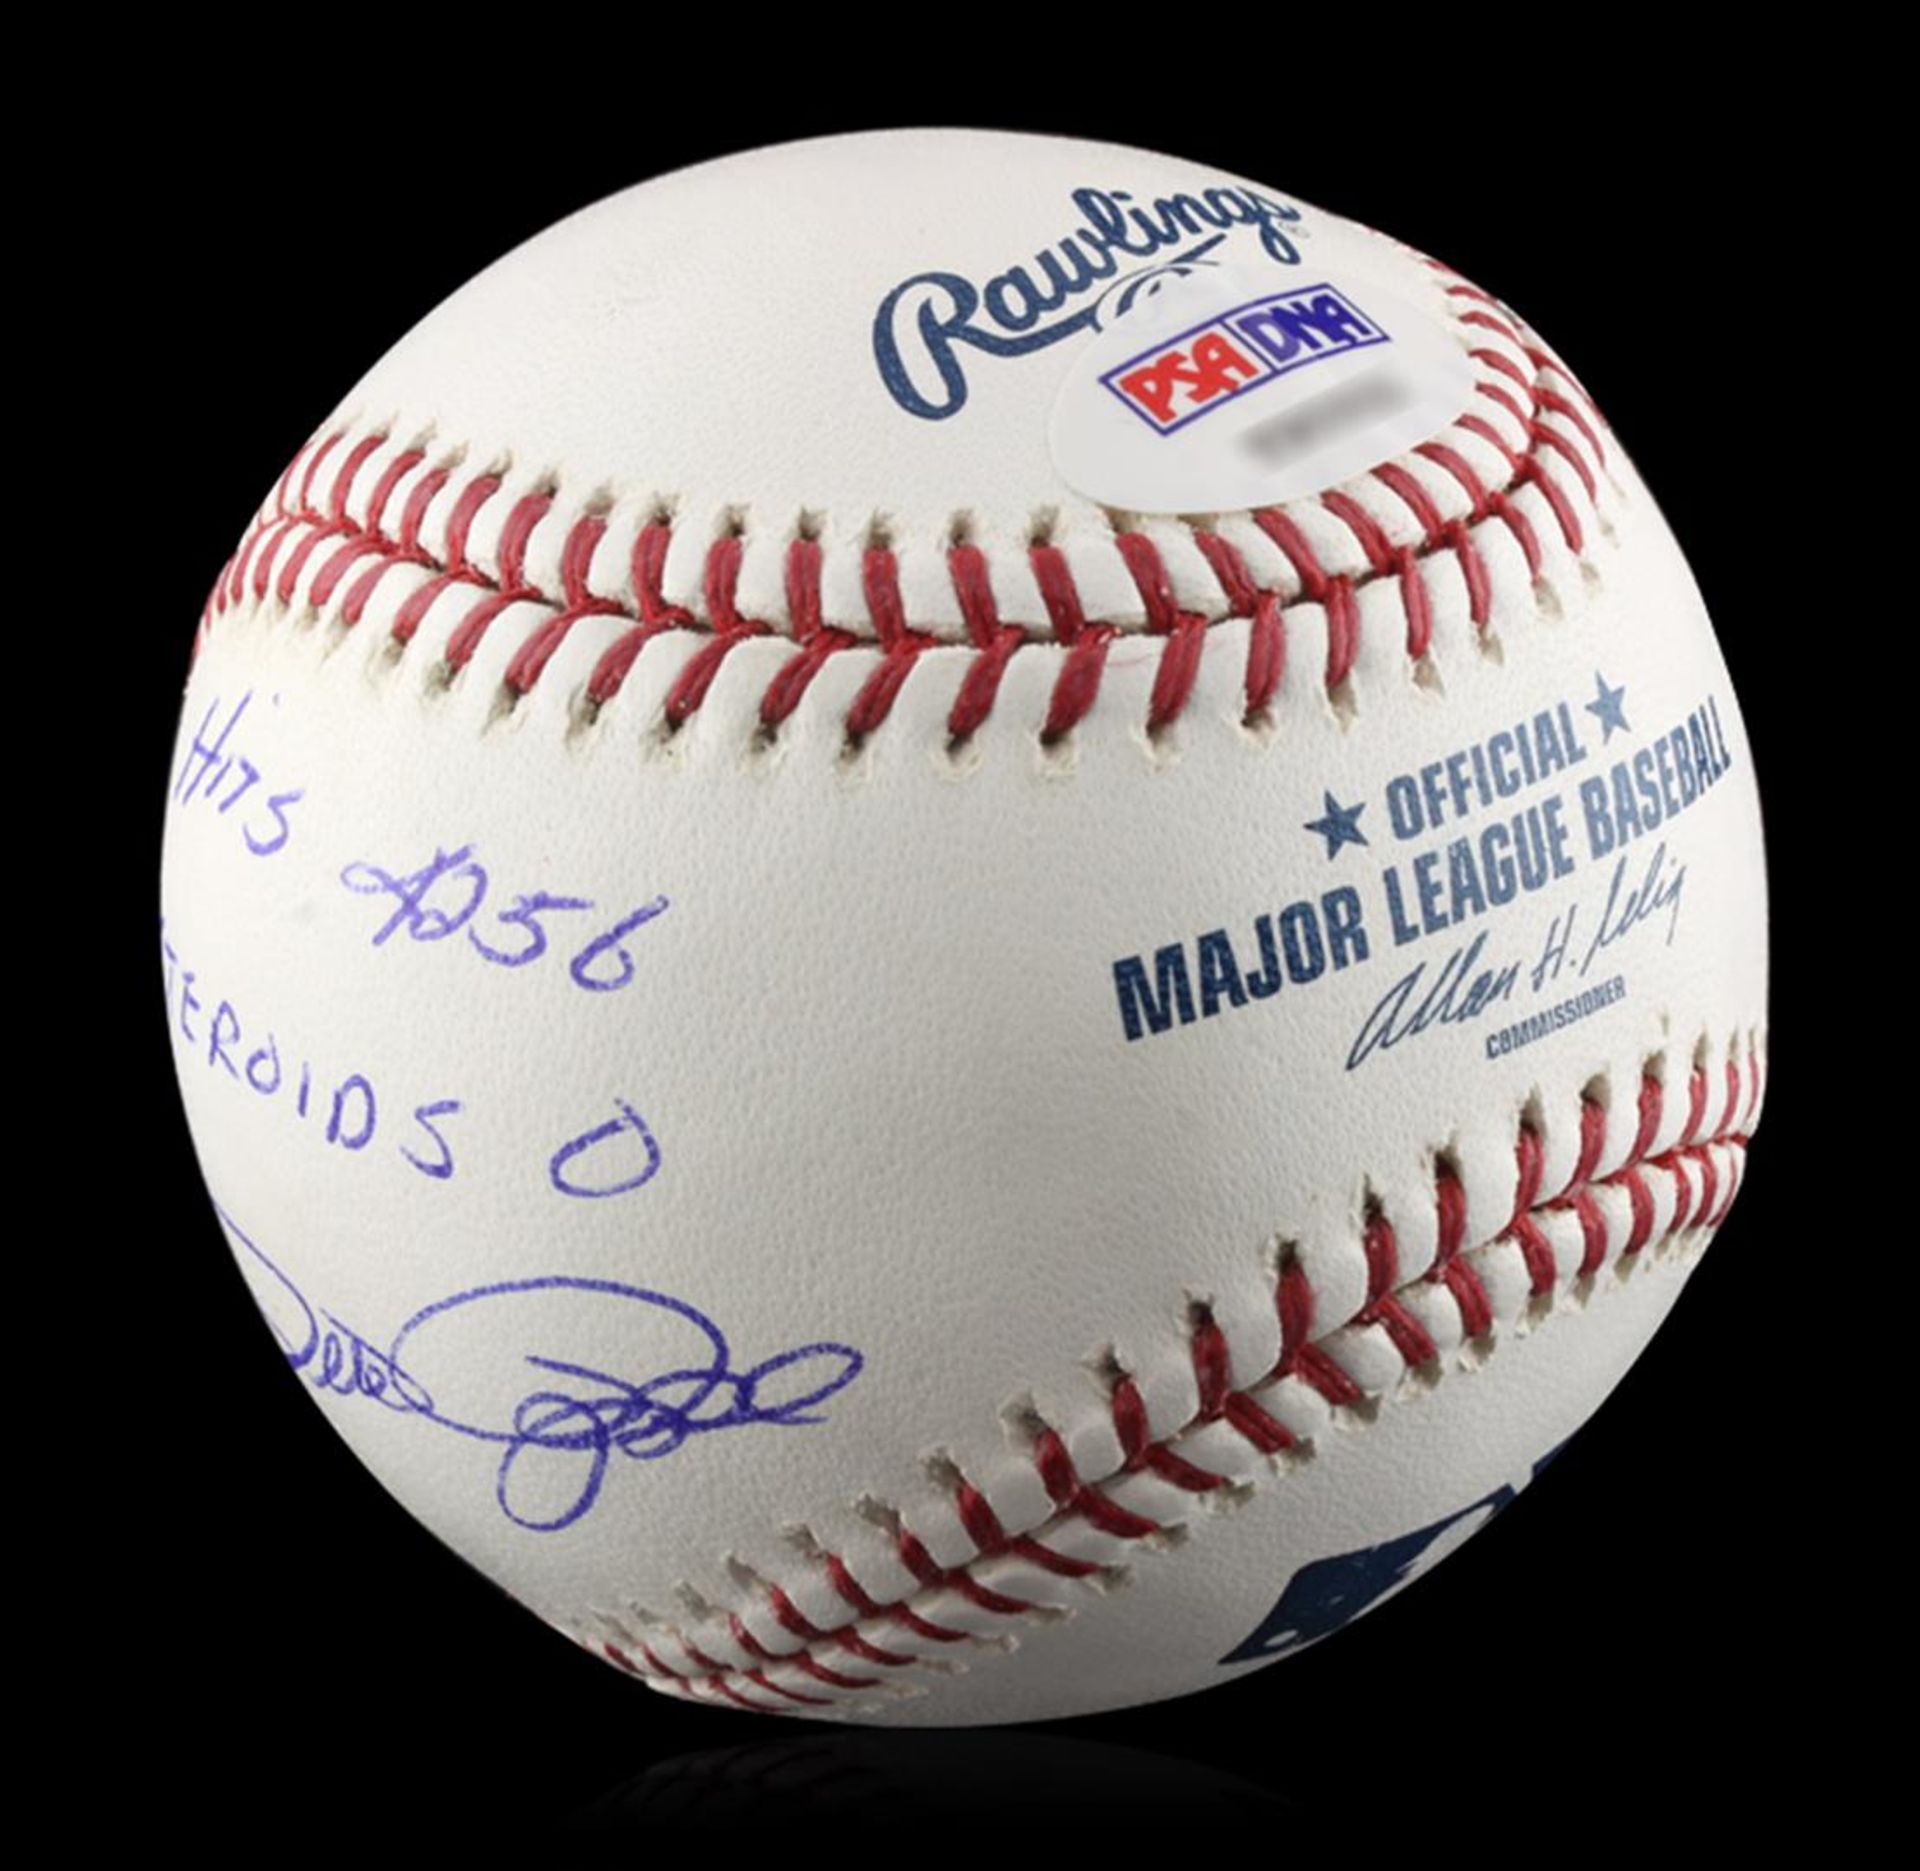 Autographed Pete Rose Baseball PSA Certified - Image 2 of 3